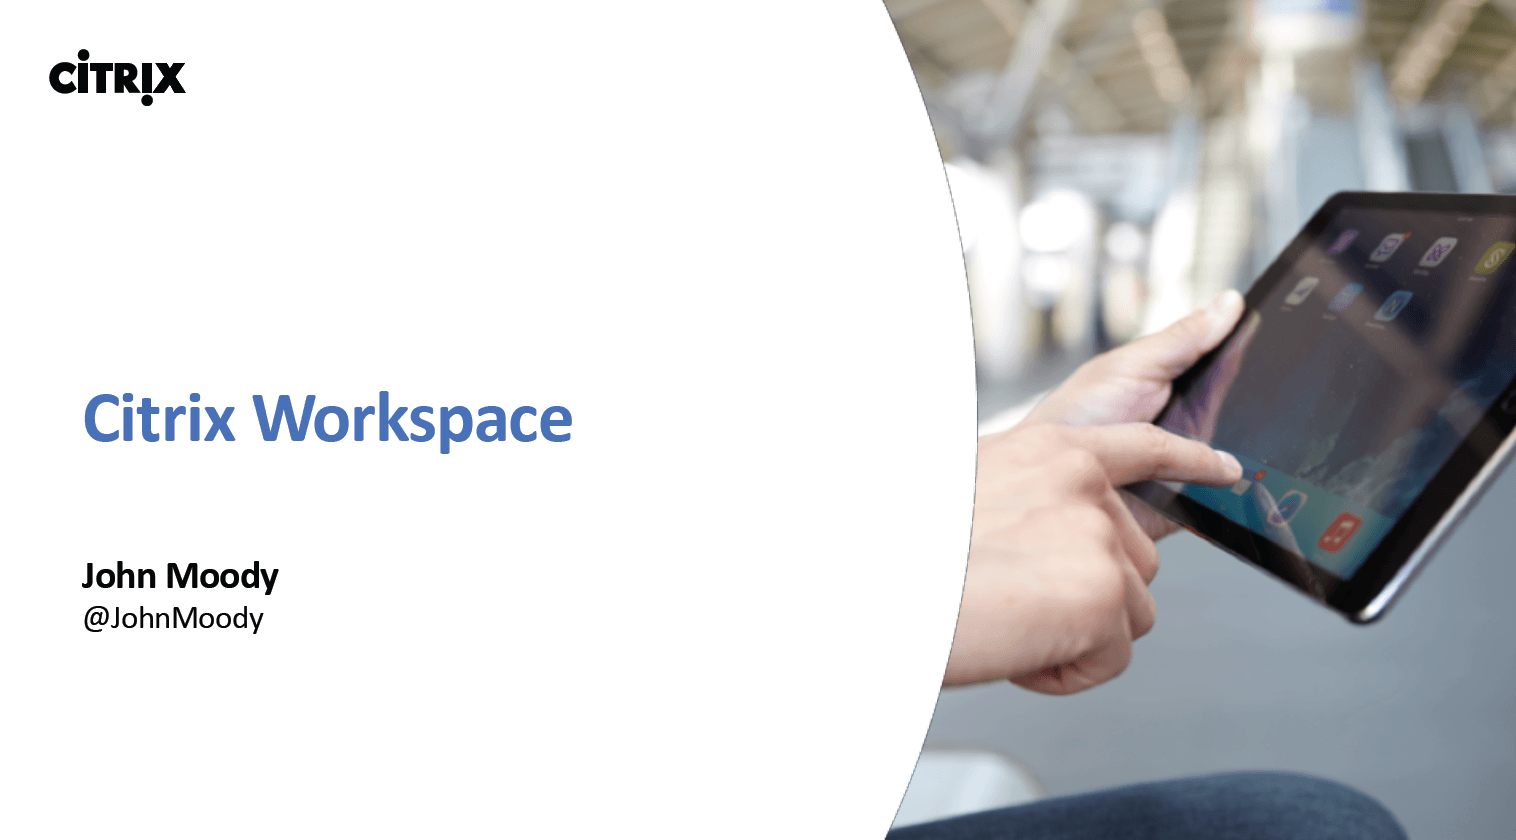 Citrix Workspace